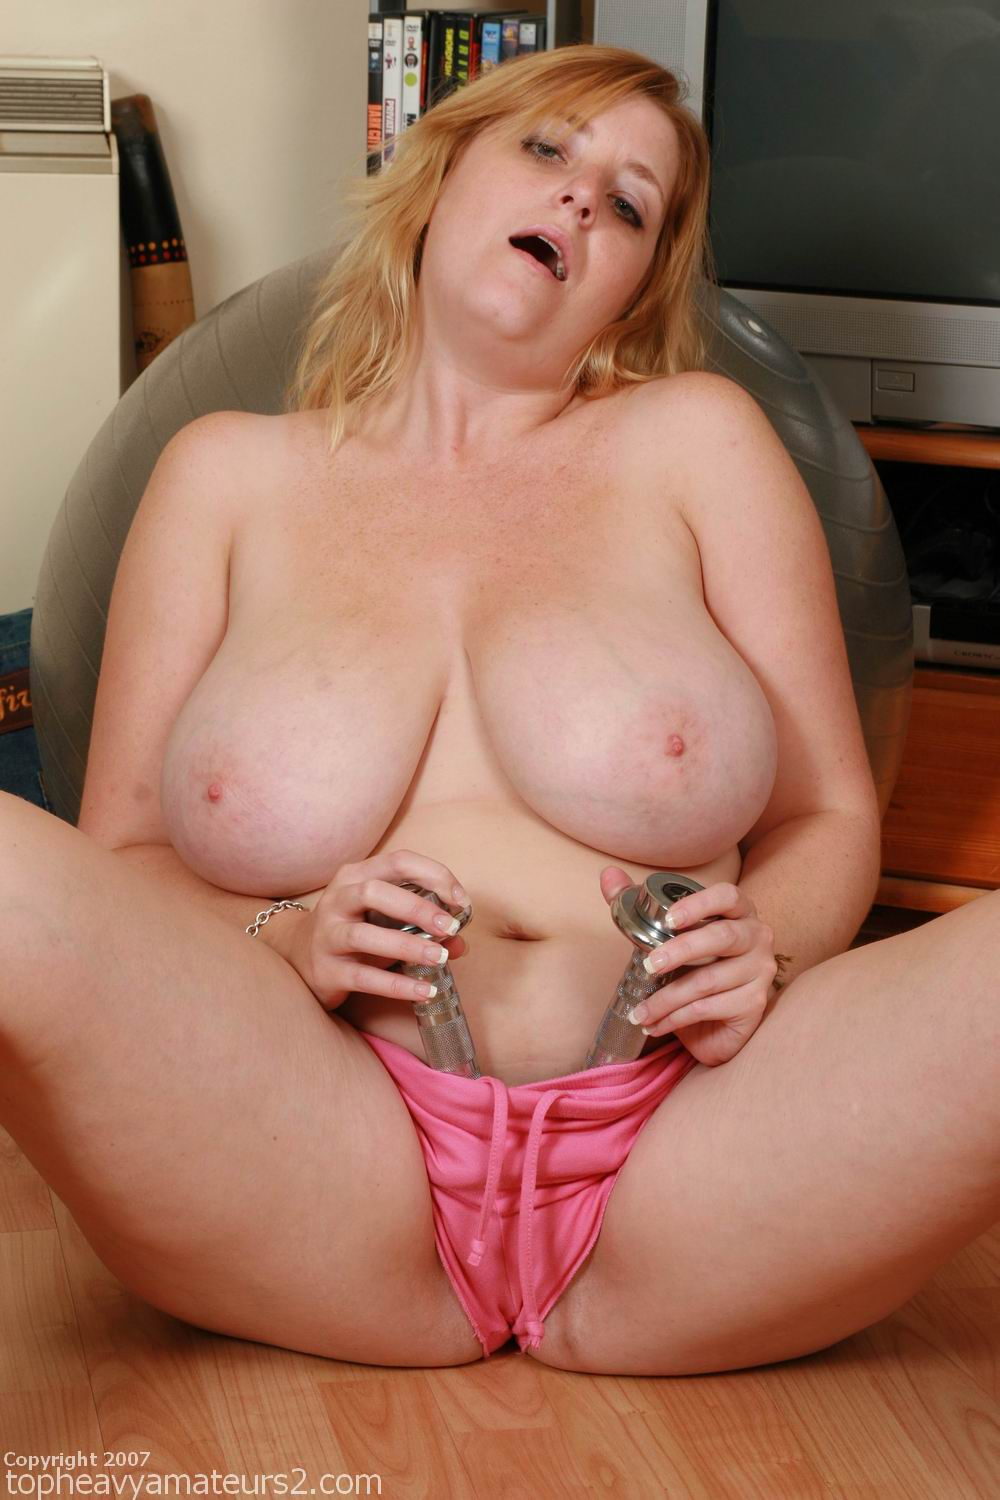 petitte girls with big boobs from Top Heavy Amateurs Image